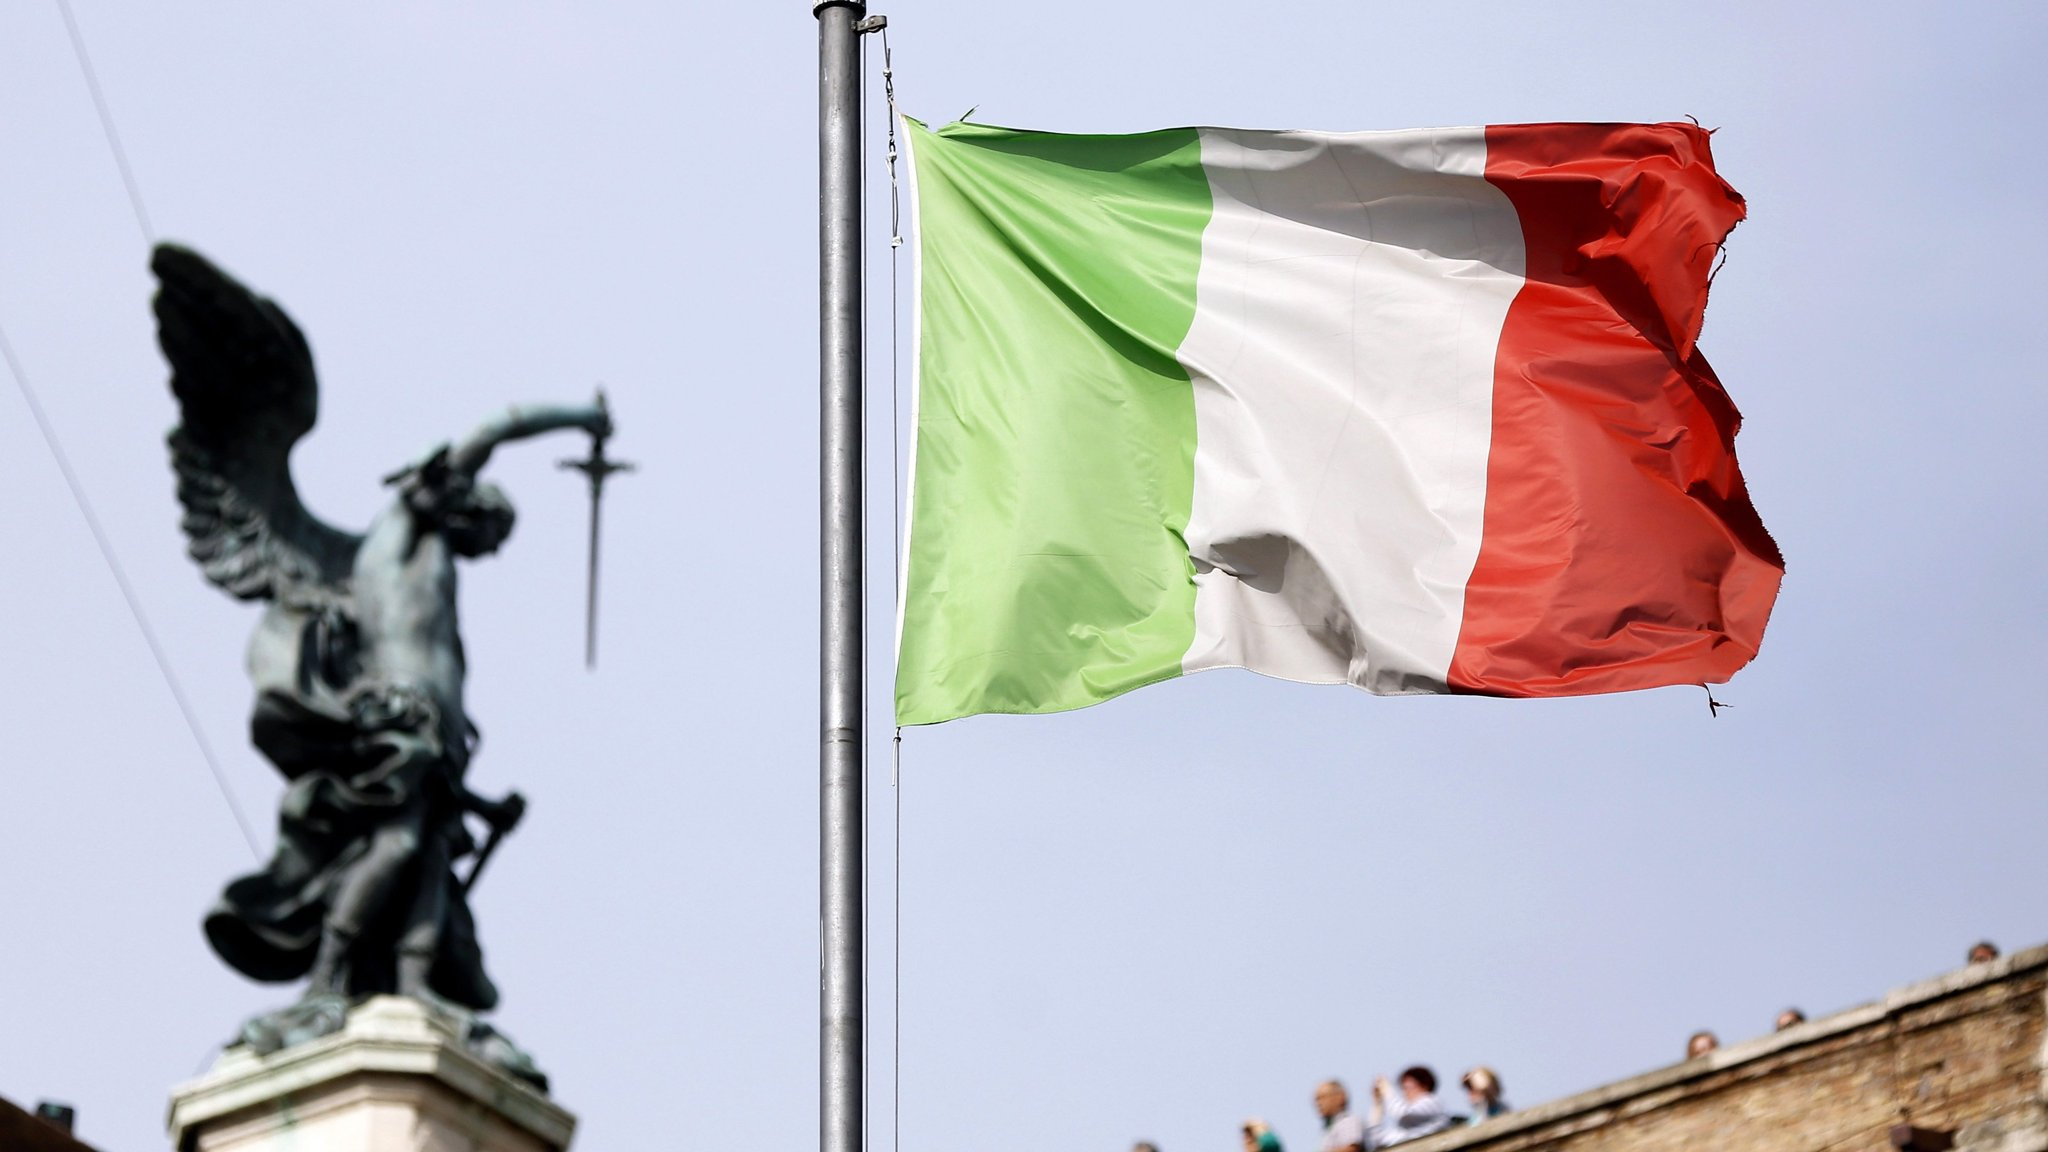 Italy avoids Fitch credit rating downgrade | Financial Times